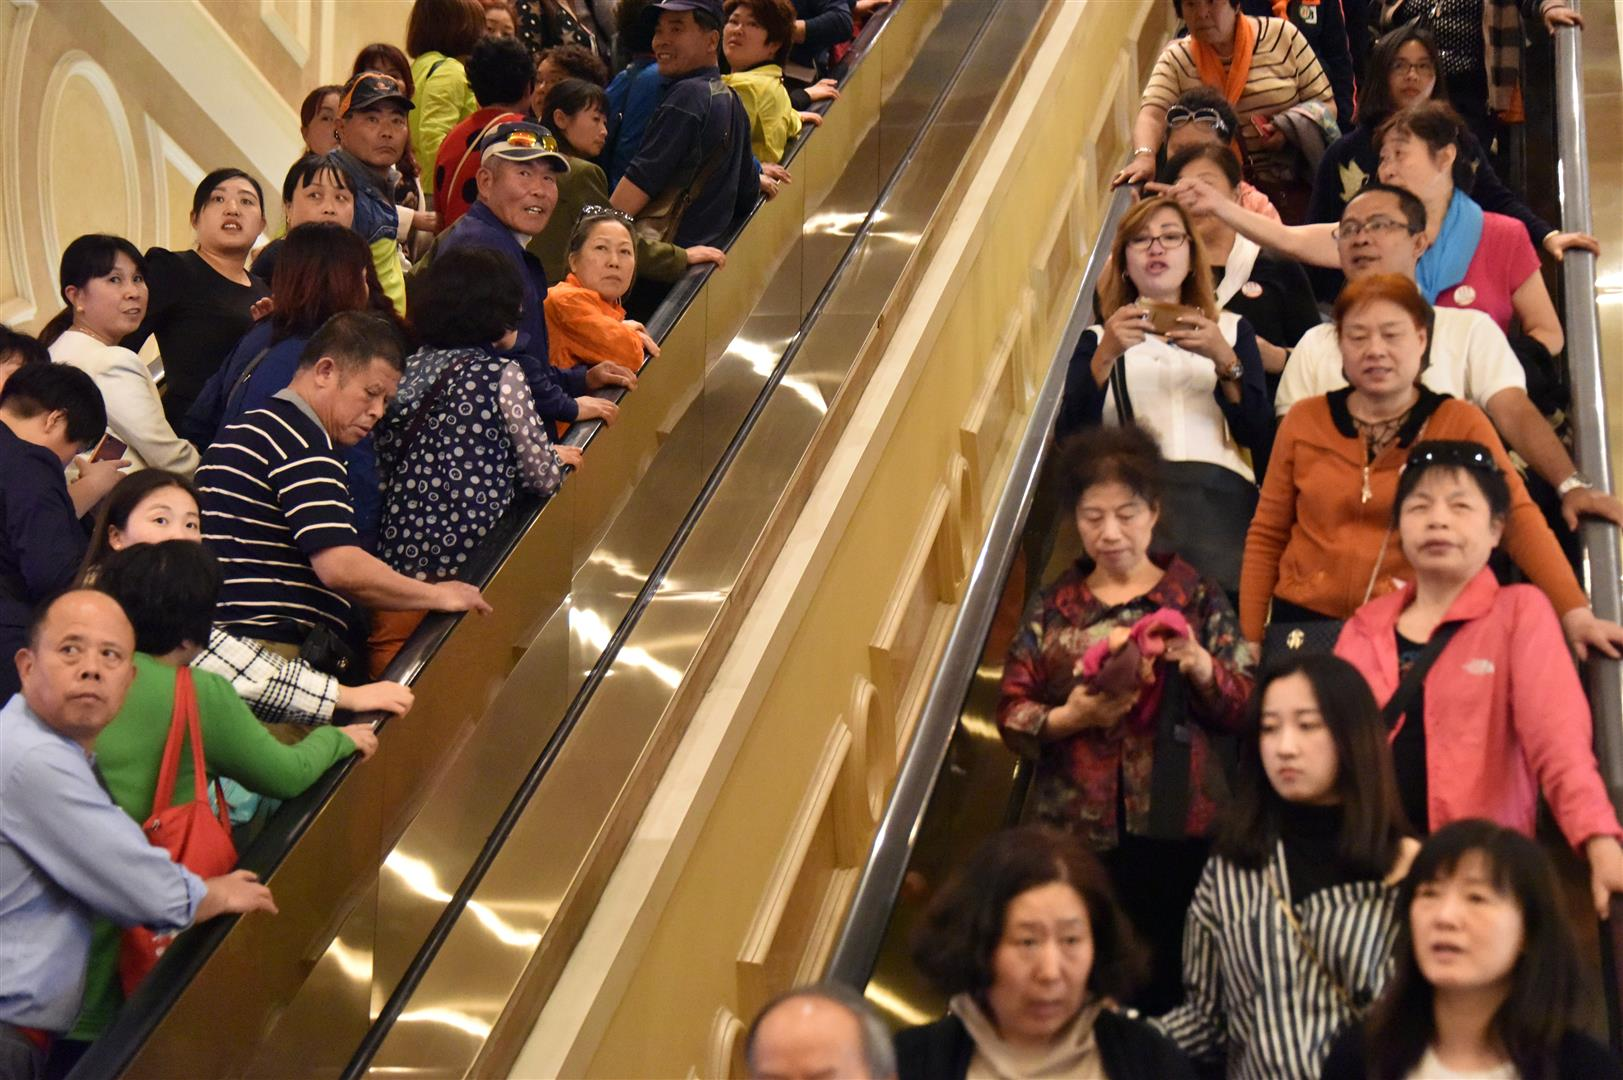 Macau - Escalator Crowd (Large)